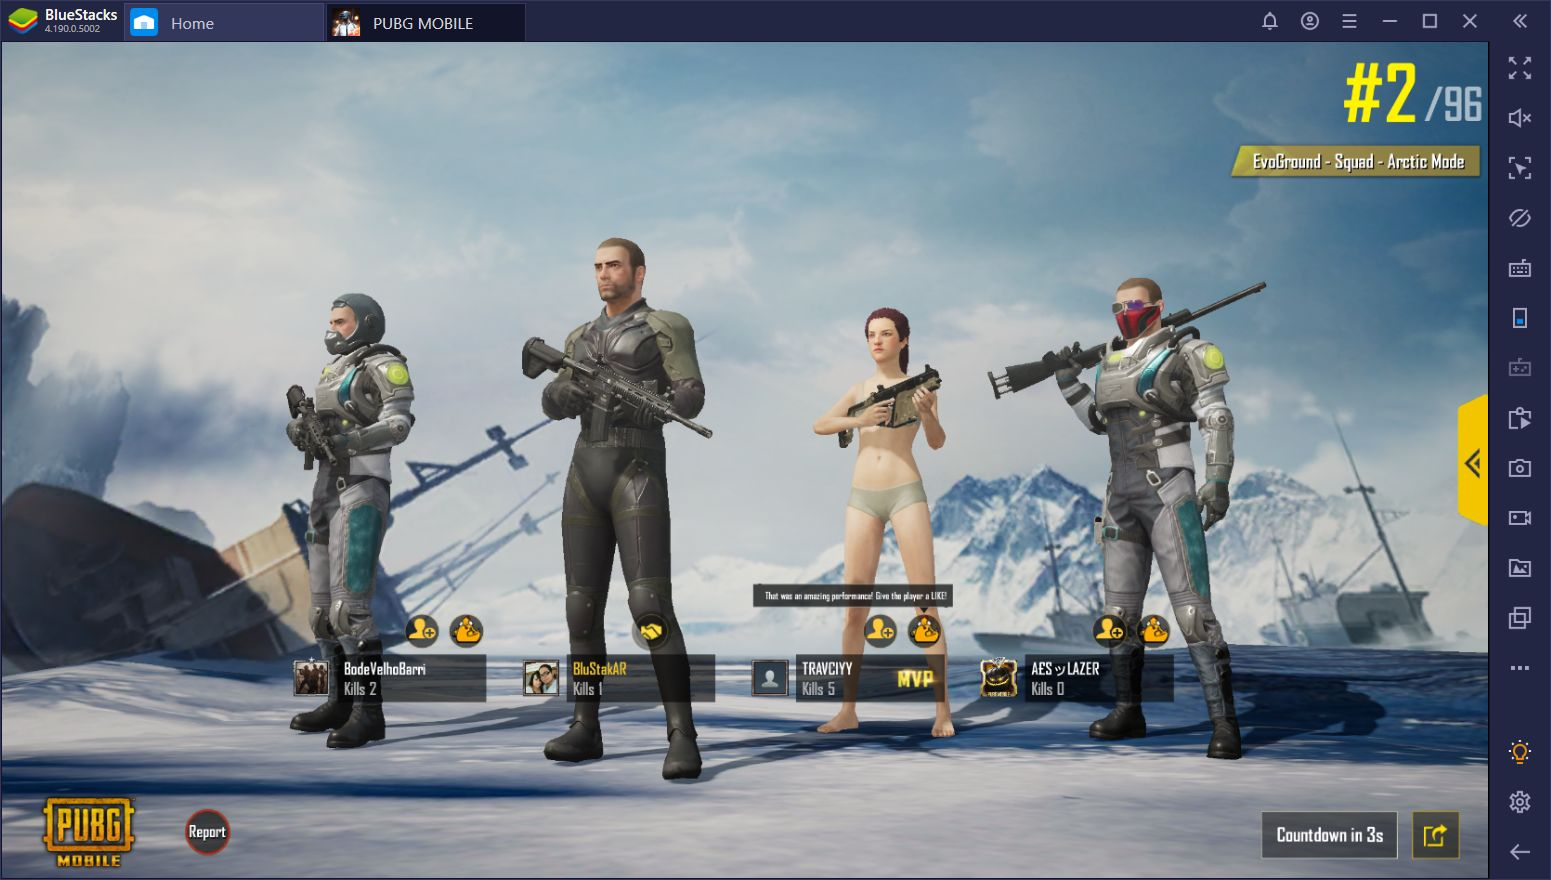 PUBG Mobile – Everything You Need to Know About the New Arctic Mode